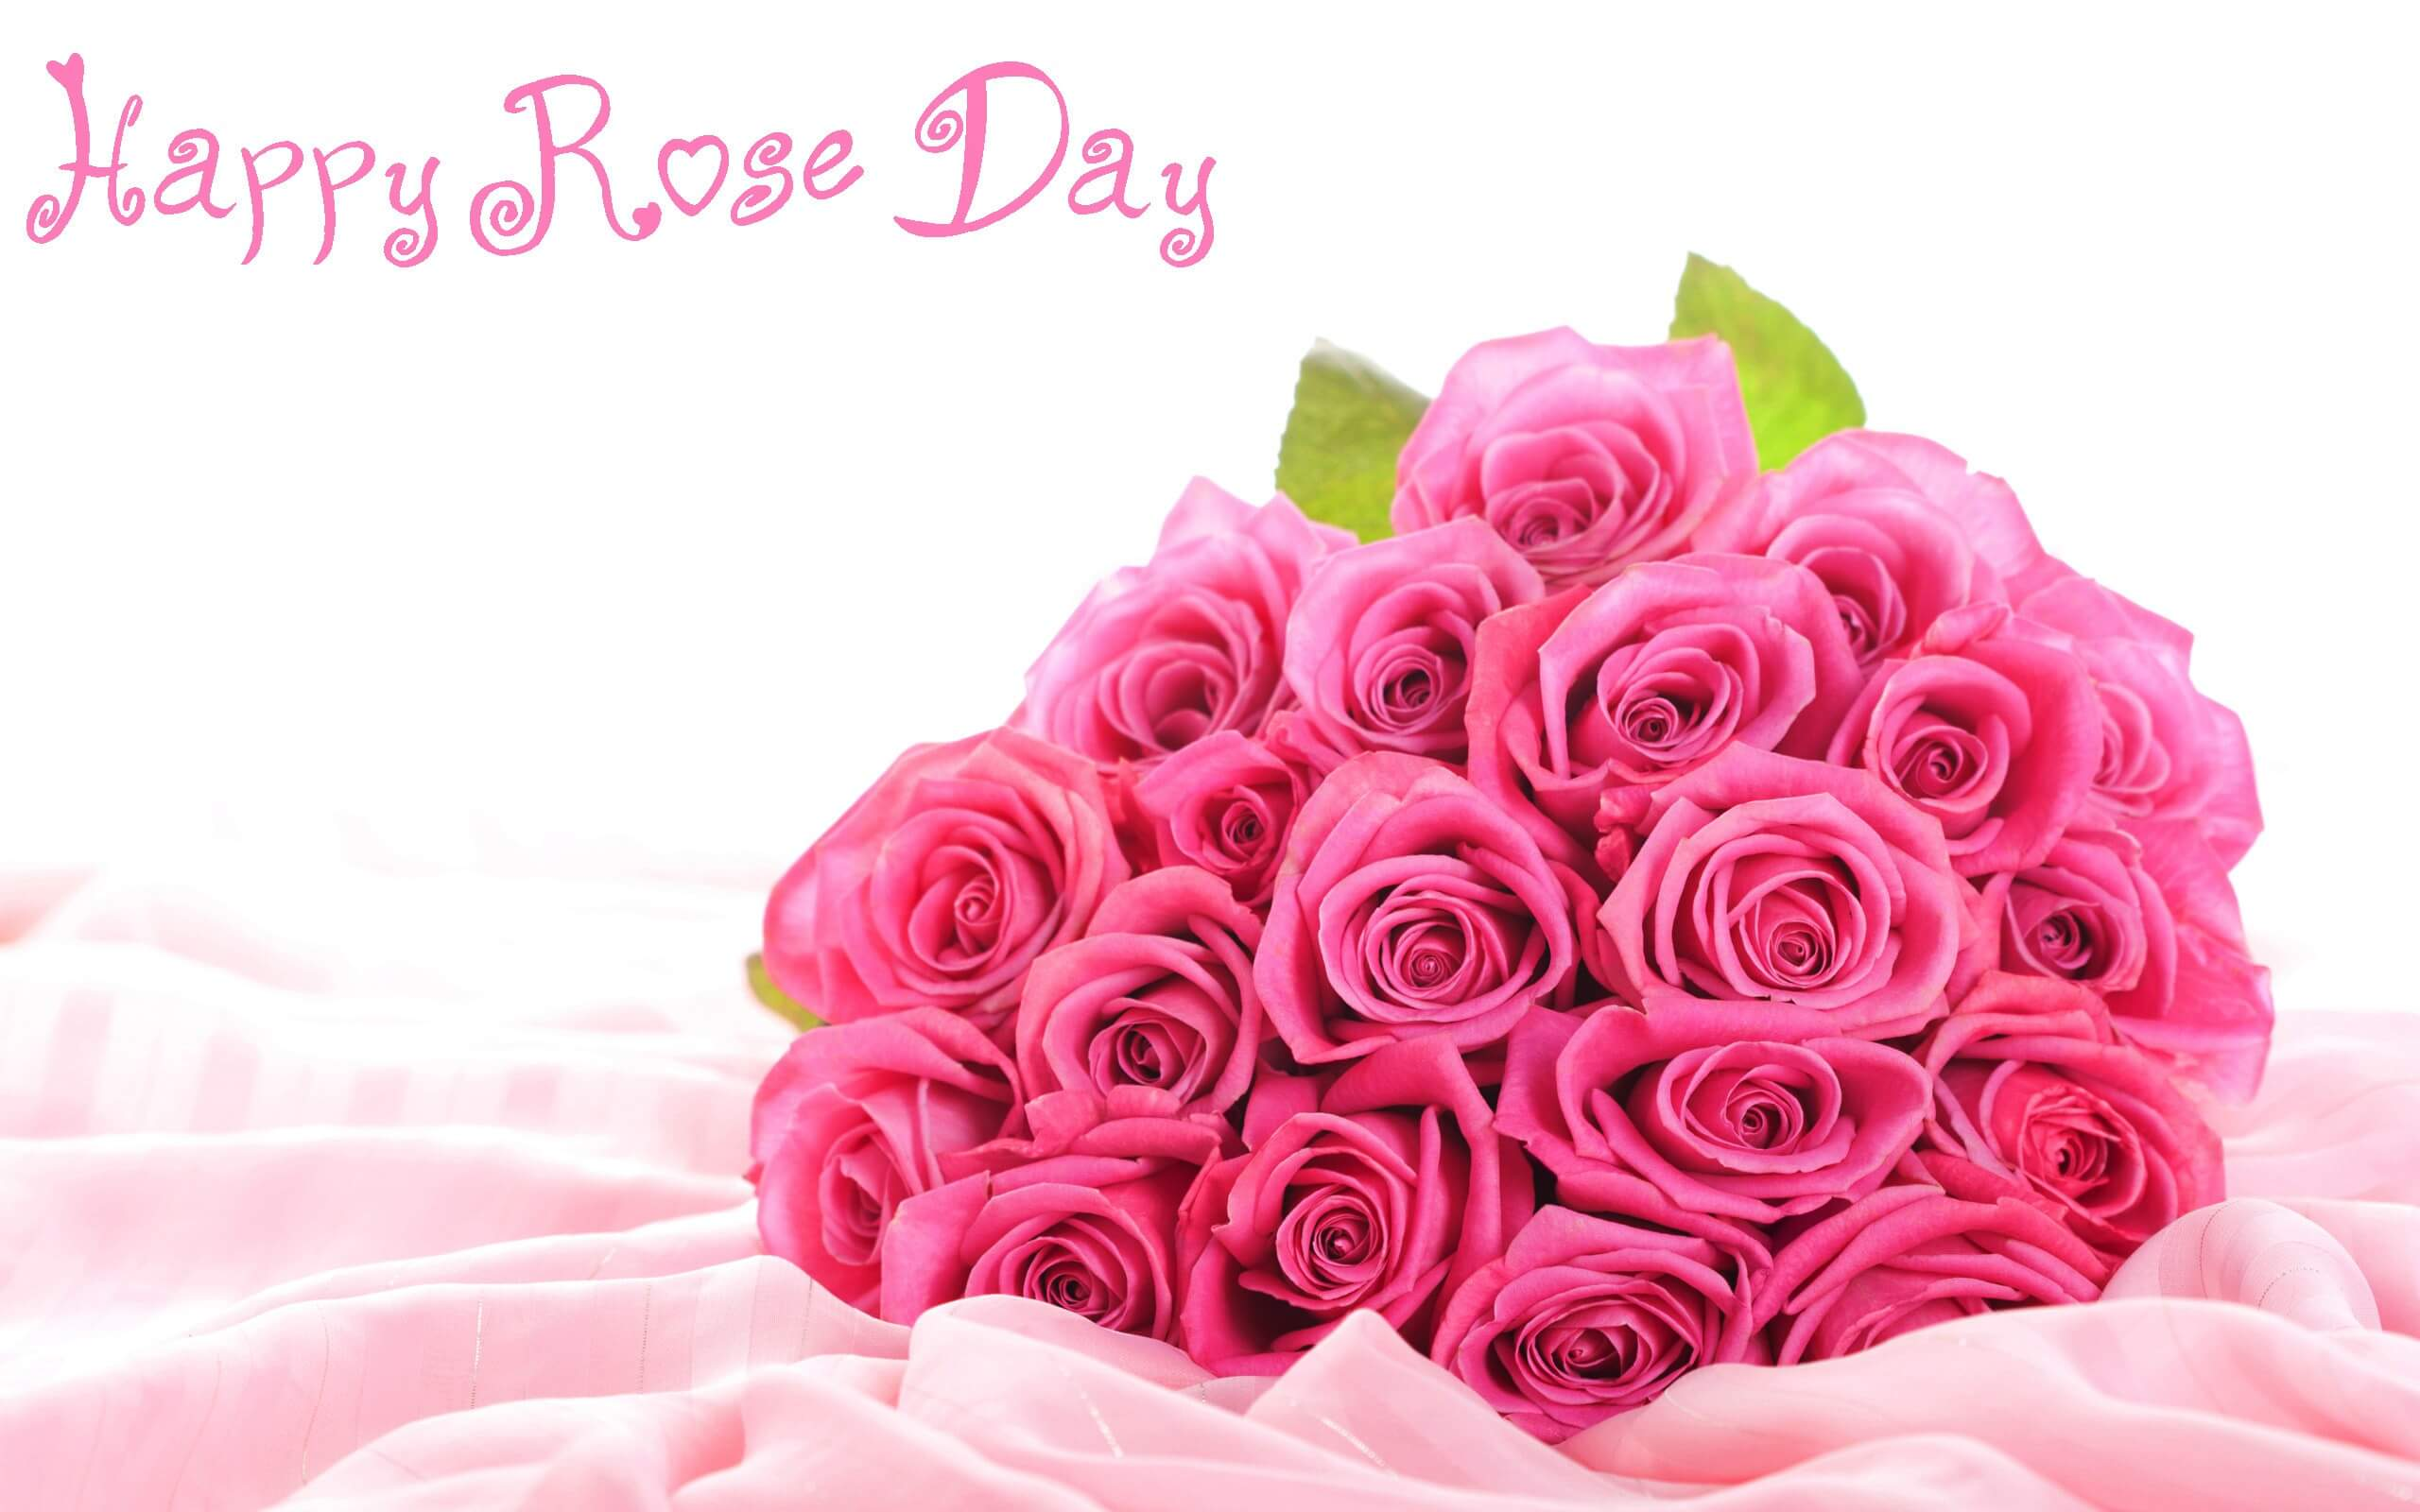 happy rose day pink flower wishes greetings image picture hd wallpaper